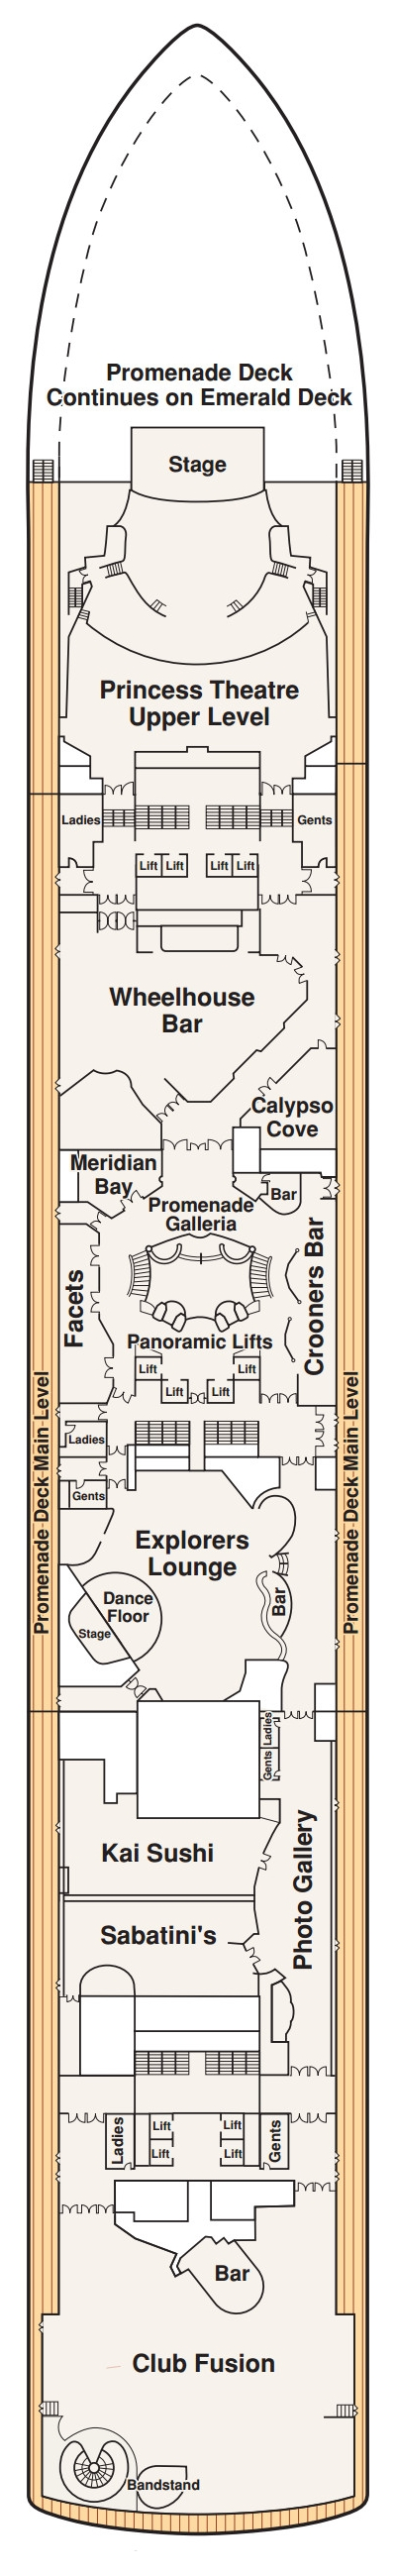 Diamond Princess Promenade Deck 7 layout